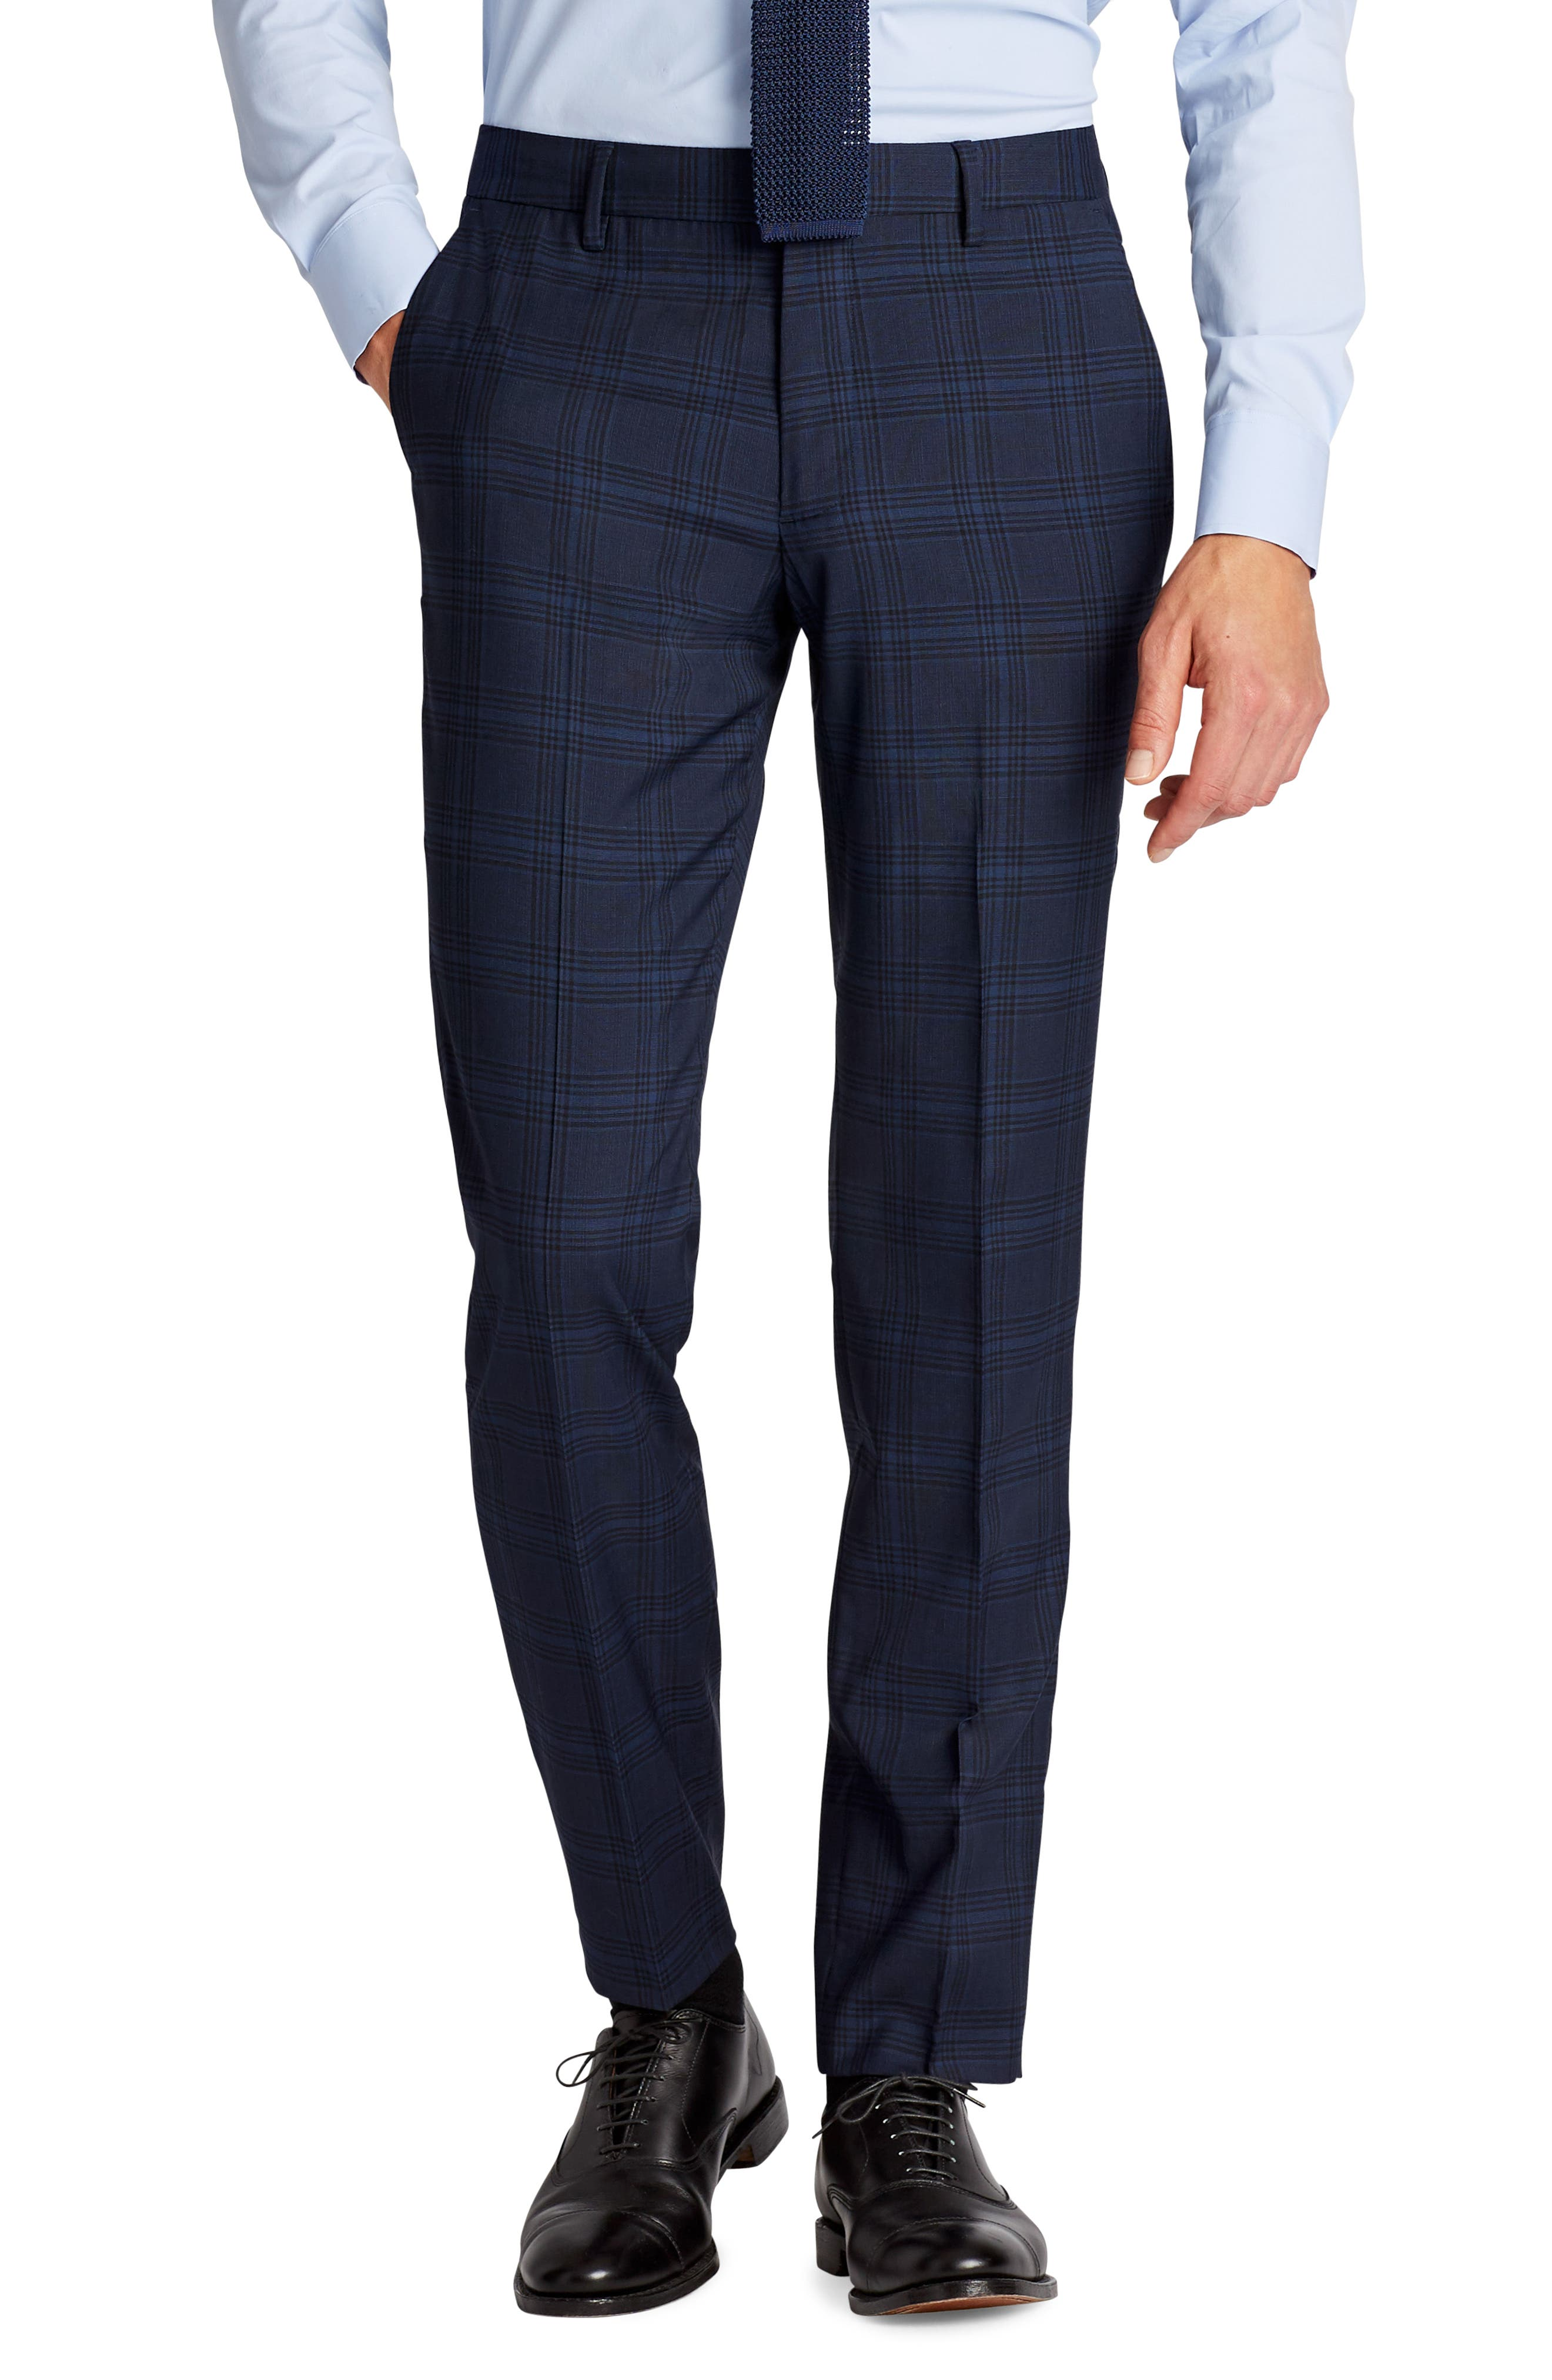 Jetsetter Flat Front Stretch Plaid Wool Blend Trousers,                             Main thumbnail 1, color,                             400